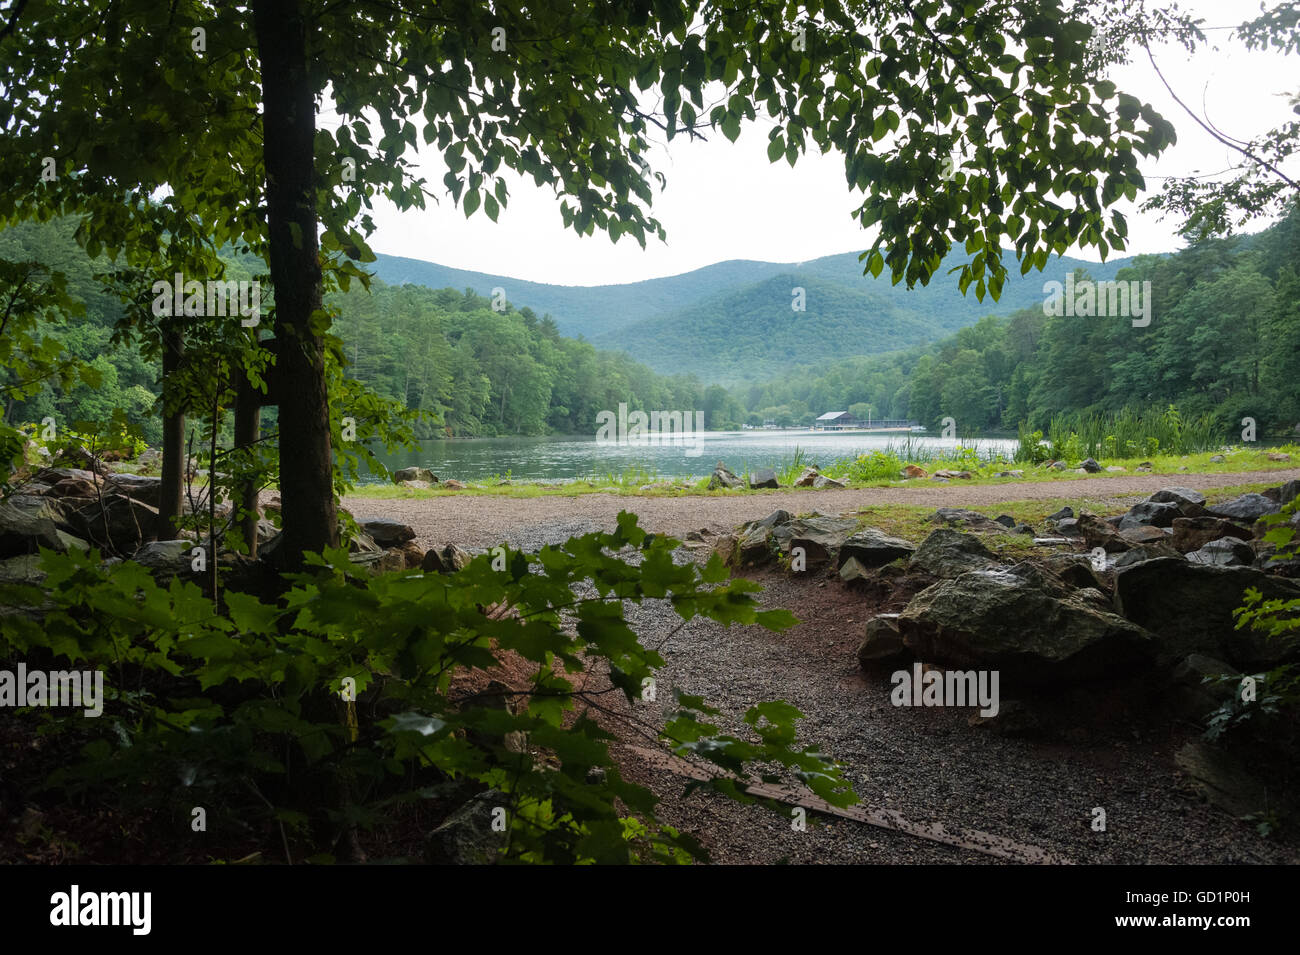 Beautiful Vogel State Park on Lake Trahlyta, nestled in the Blue Ridge Mountains of North Georgia near the Appalachian - Stock Image